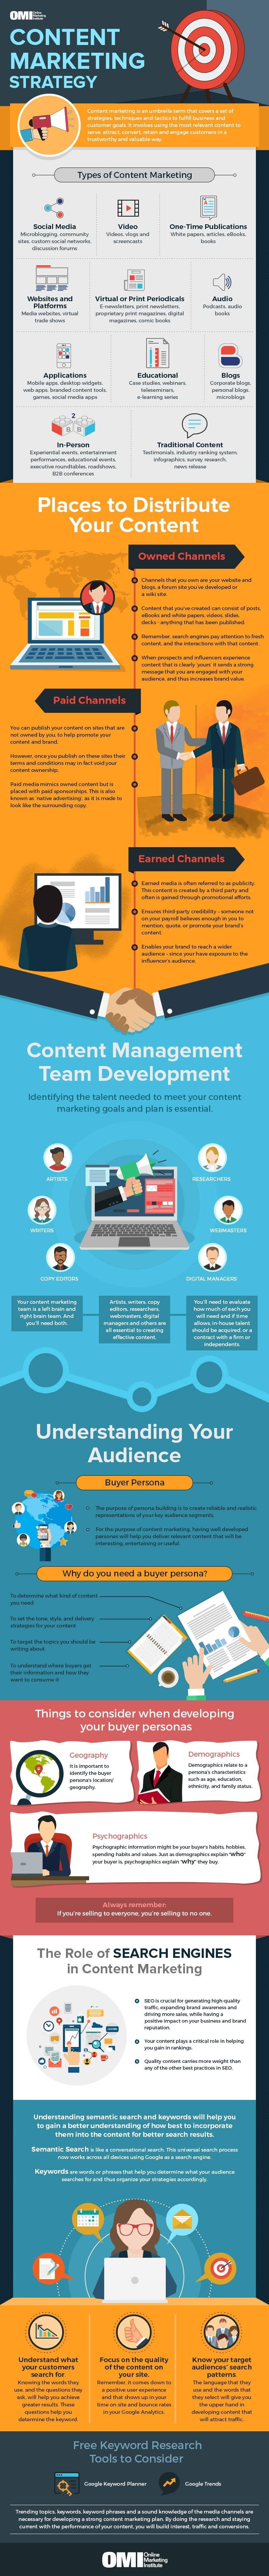 Content Marketing Strategy - #infographic